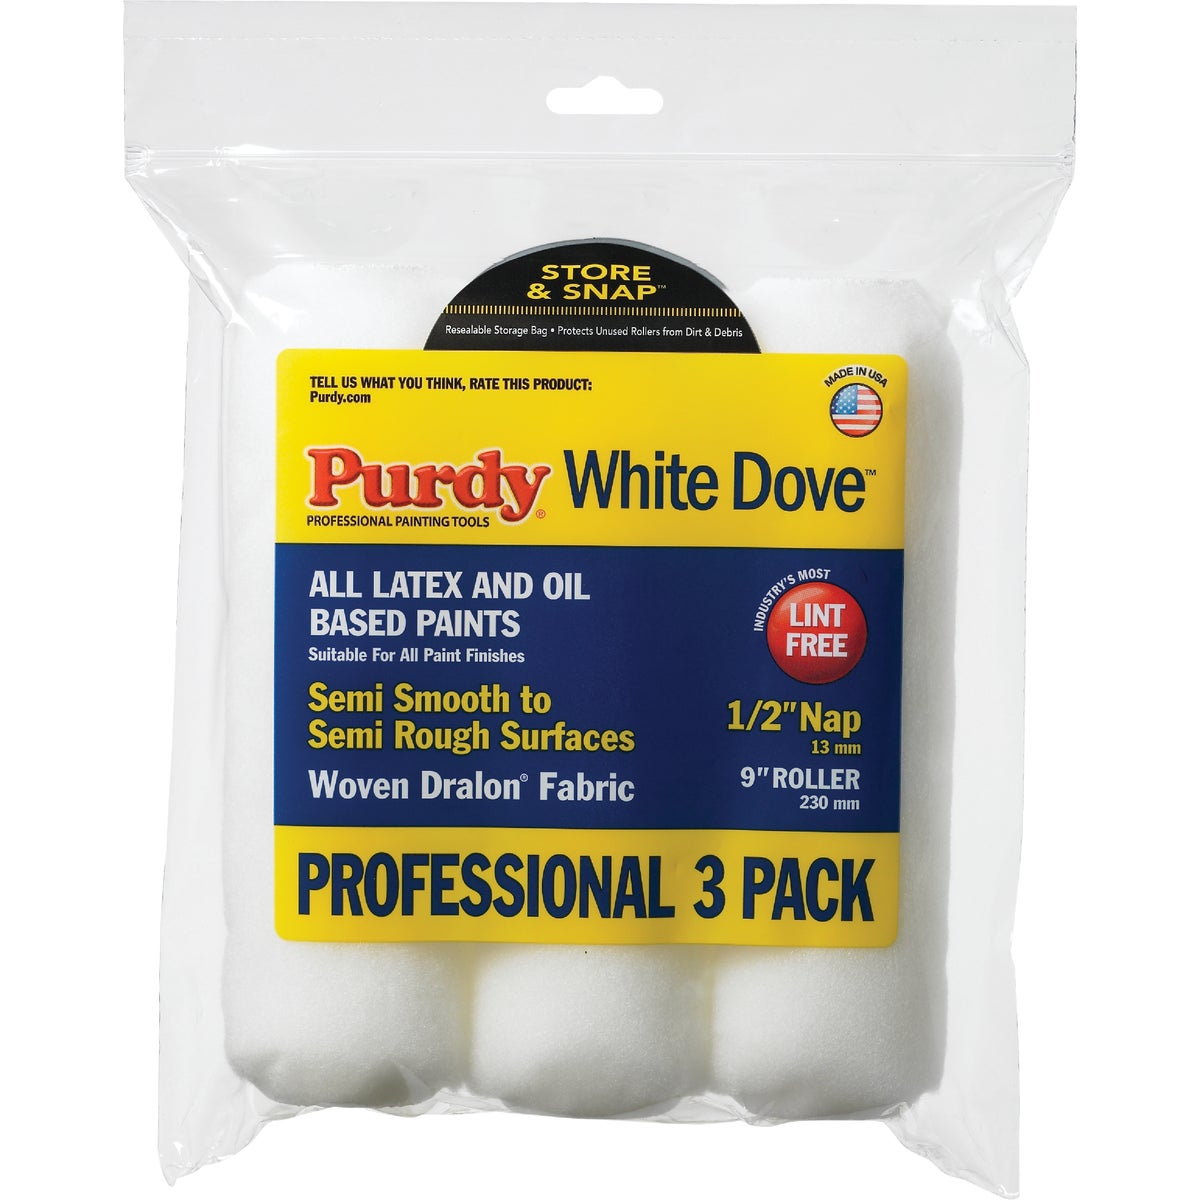 "3PK 1/2"" ROLLER COVERS - 140864000 by Purdy Bestt Liebco"